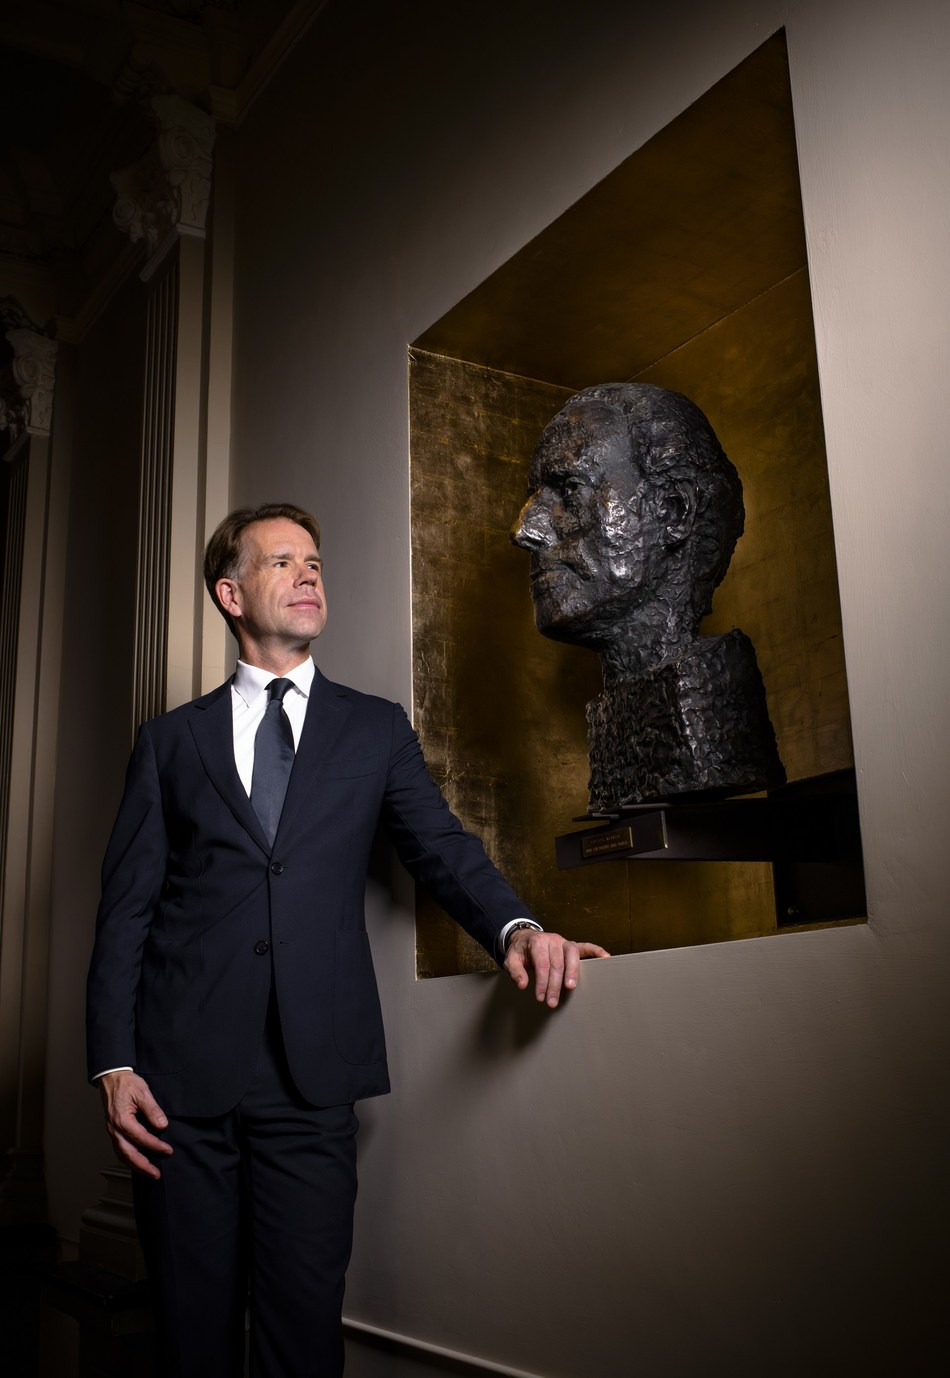 Simon Reinink - Managing Director The Royal Concertgebouw Amsterdam. With an art bust of Gustav Mahler made by his daughter Marina Mahler © Simon van Boxtel. (PRNewsfoto/The Royal Concertgebouw)